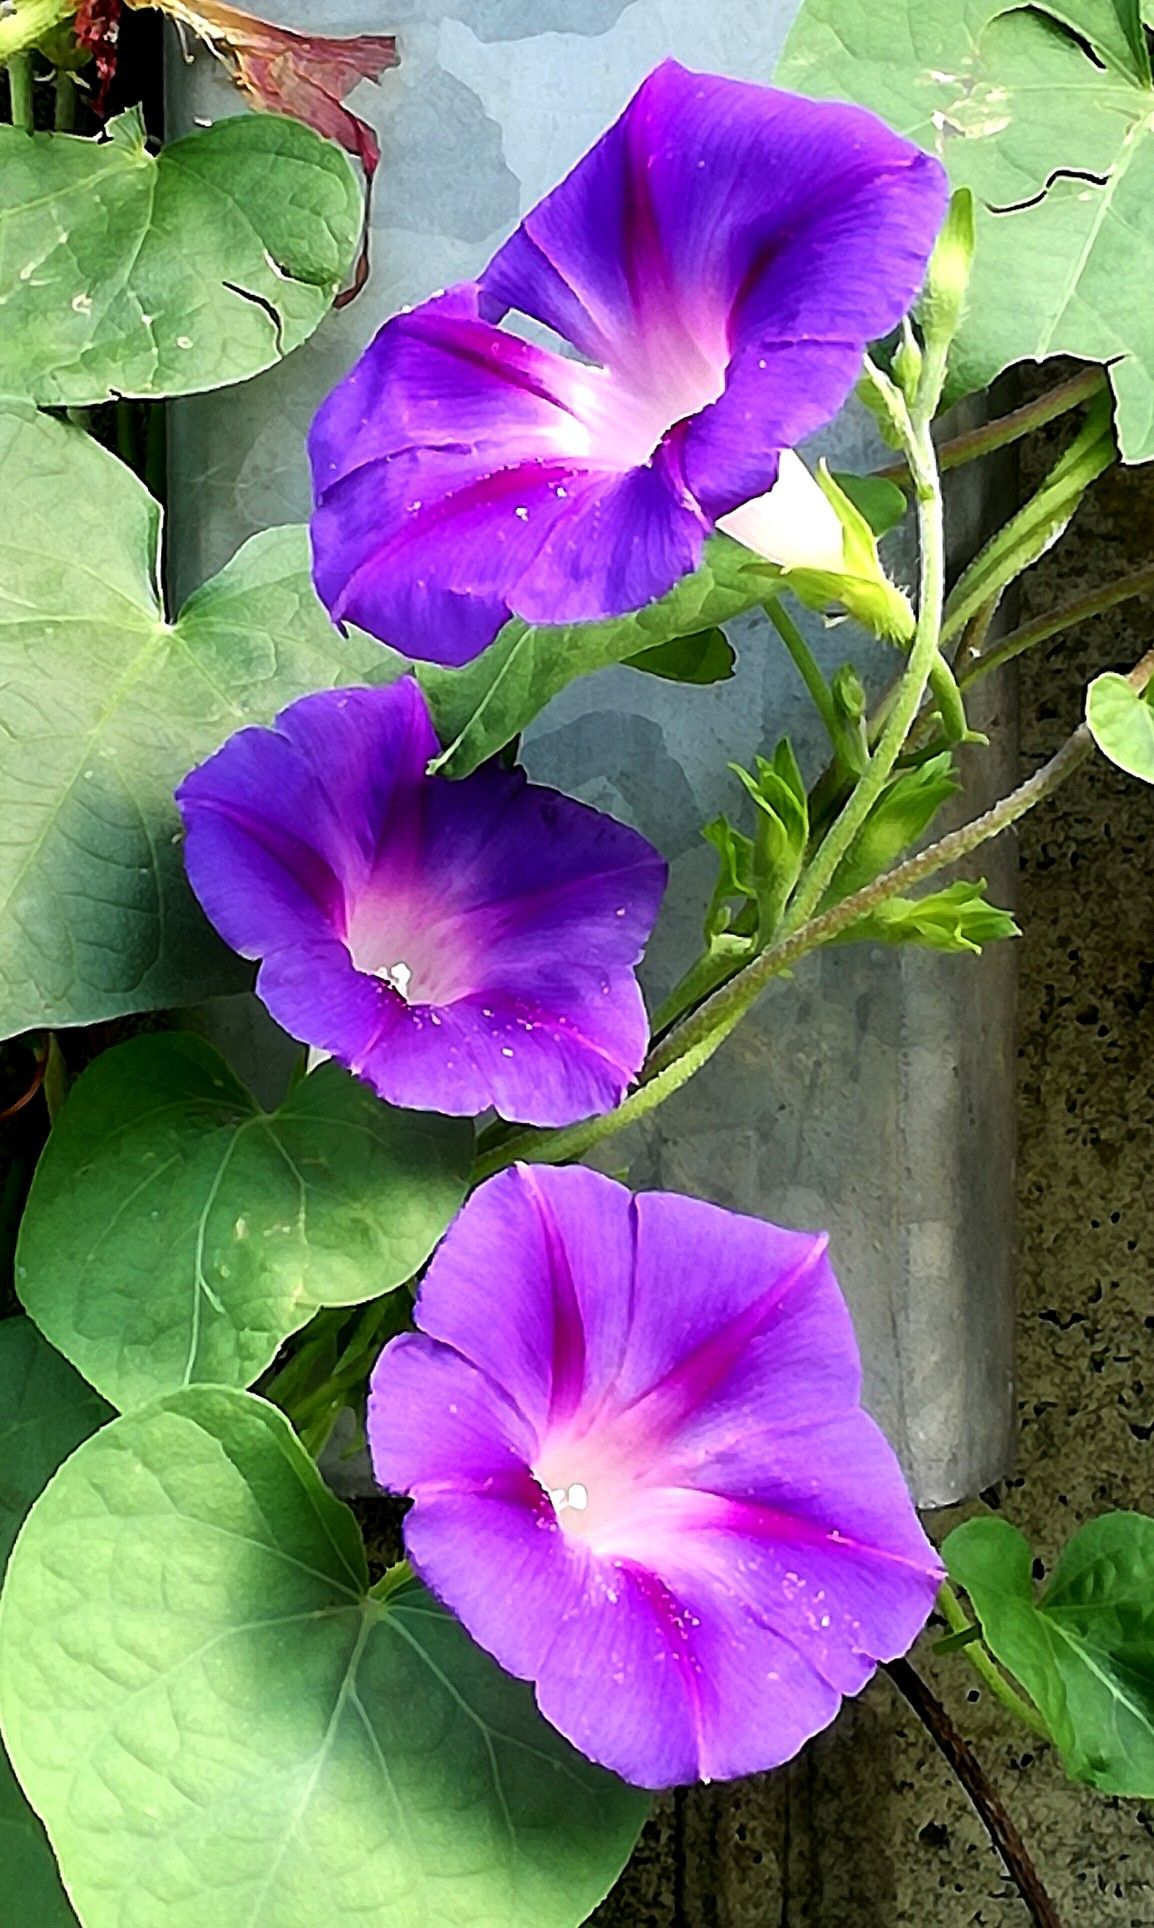 Pin By Lynn Peeler On Beautifull Flowers Morning Glory Flowers Flowers Photography Flower Garden Plans